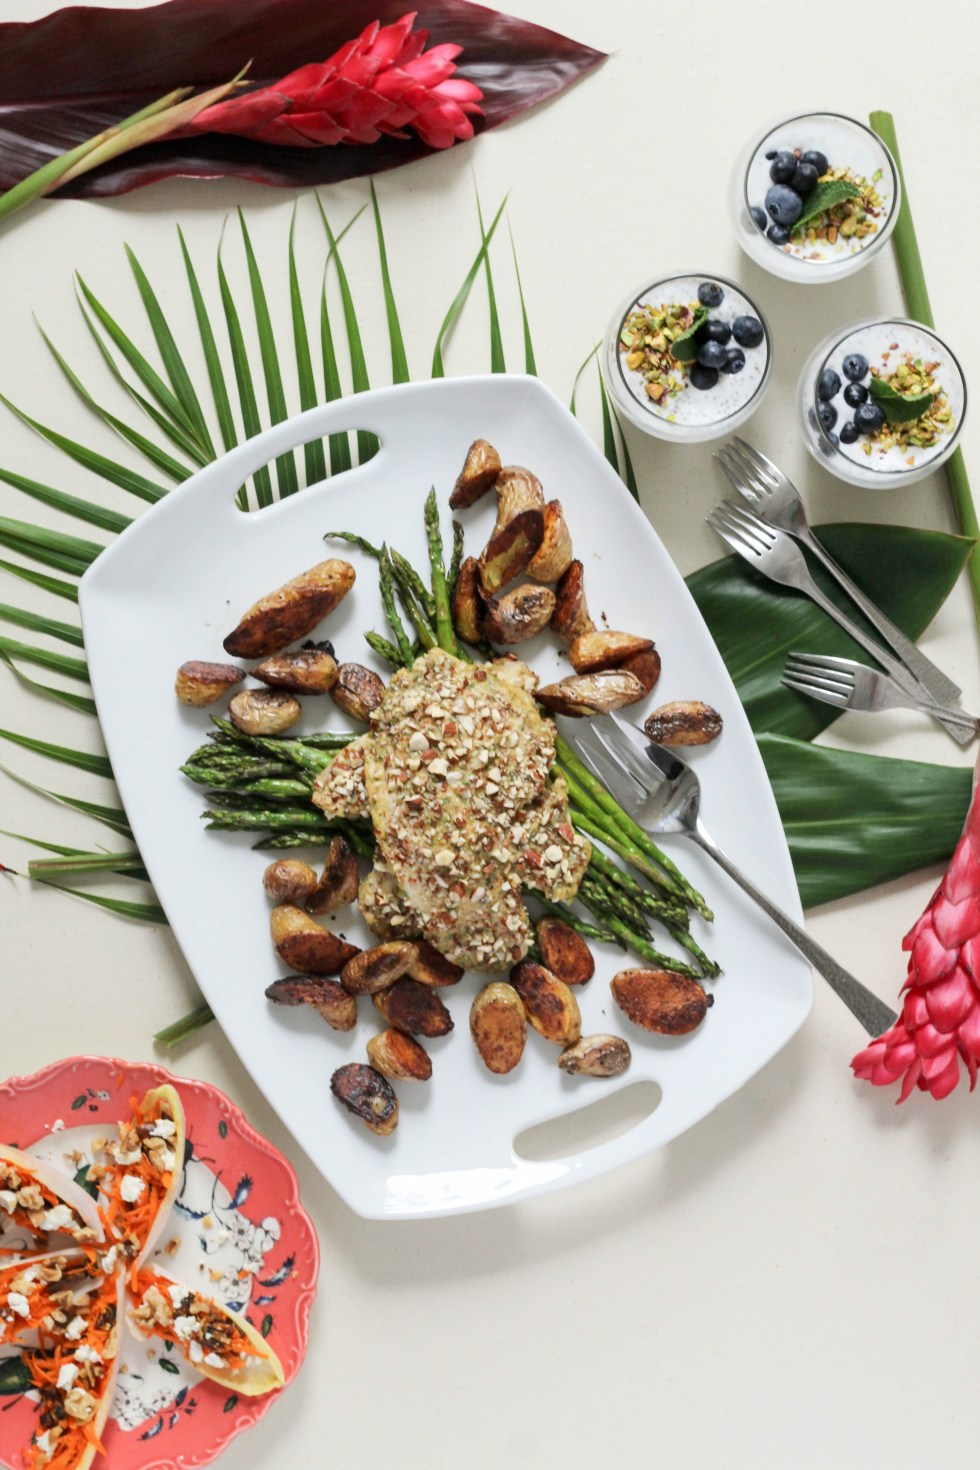 Almond crusted mediterranean tilapia or mushroom caps, carrot and date endive boats, and coconut cardamom rose chia pudding. An easy 3 course meal, perfect for Mother's Day | POP KITCHEN